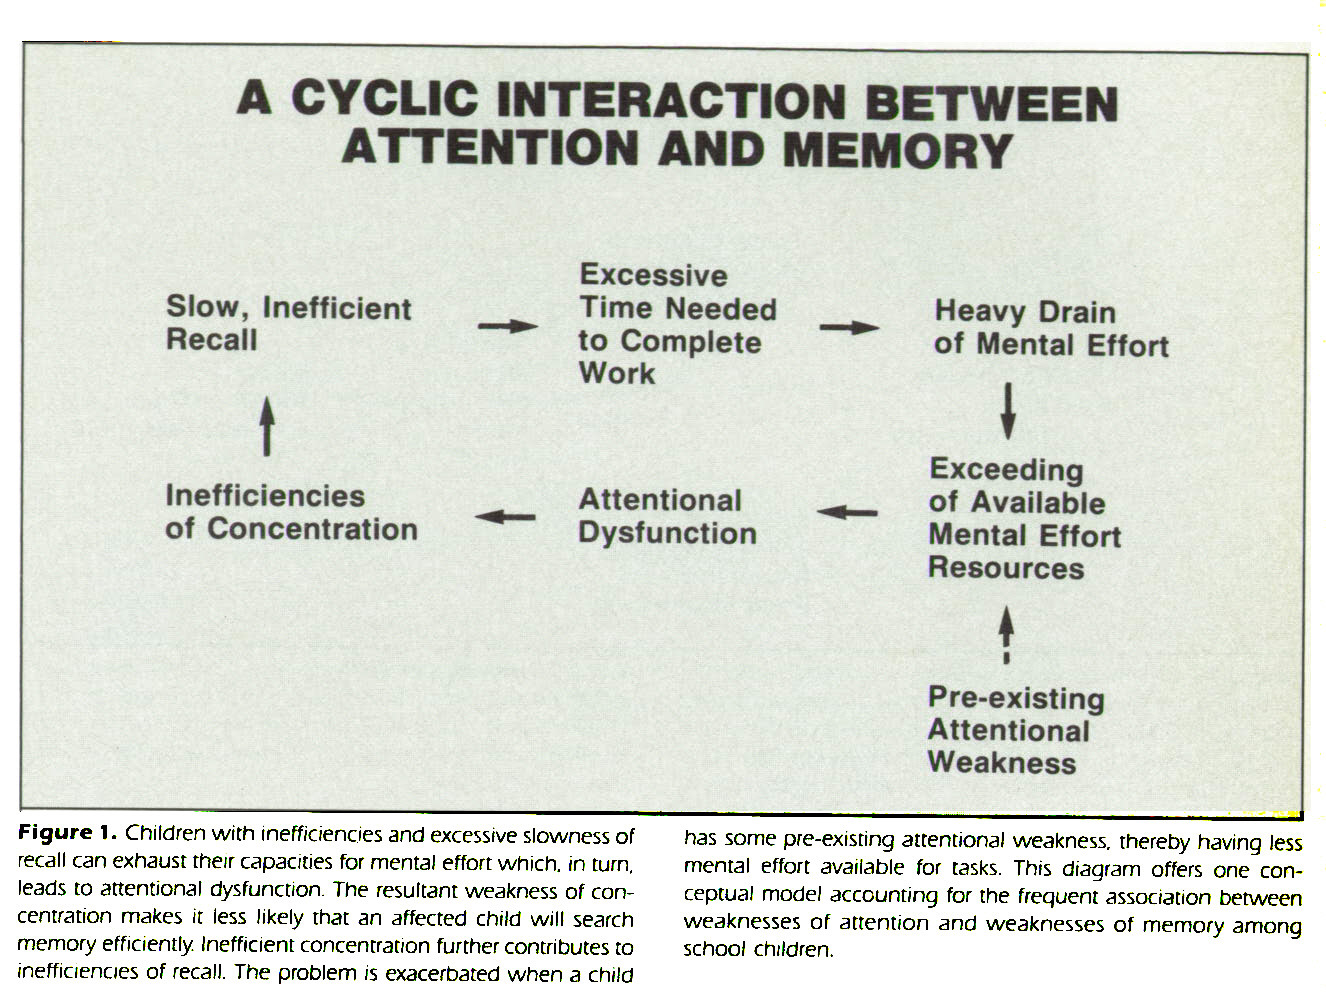 Figure 1. Children with inefficiencies and excessive slowness of recall can exhaust their capacities for mental effort which, in turn, leads to attentional dysfunction. The resultant weakness of concentration makes it less likely that an affected child will search memory efficiently. Inefficient concentration further contributes to inefficiencies of recall. The problem is exacerbated when a child has some pre-existing attentional weakness, thereby having less mental effort available for tasks. This diagram offers one conceptual model accounting for the frequent association between weaknesses of attention and weaknesses of memory among school children.